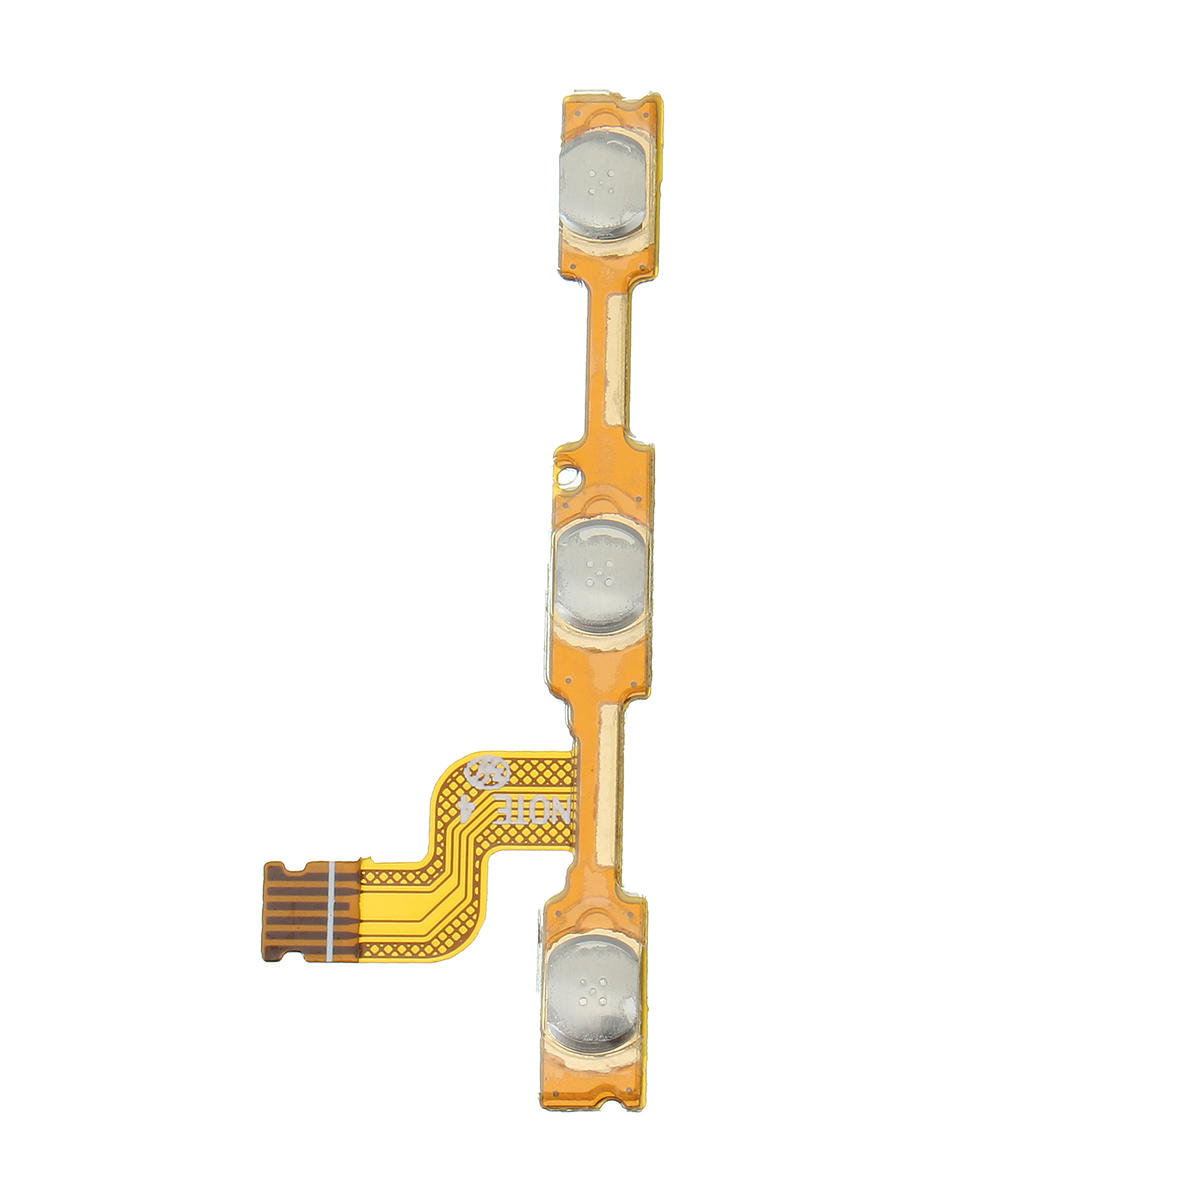 Flex Cable Boot Volume Button Cable Power On Cable For Xiaomi Redmi Note 4